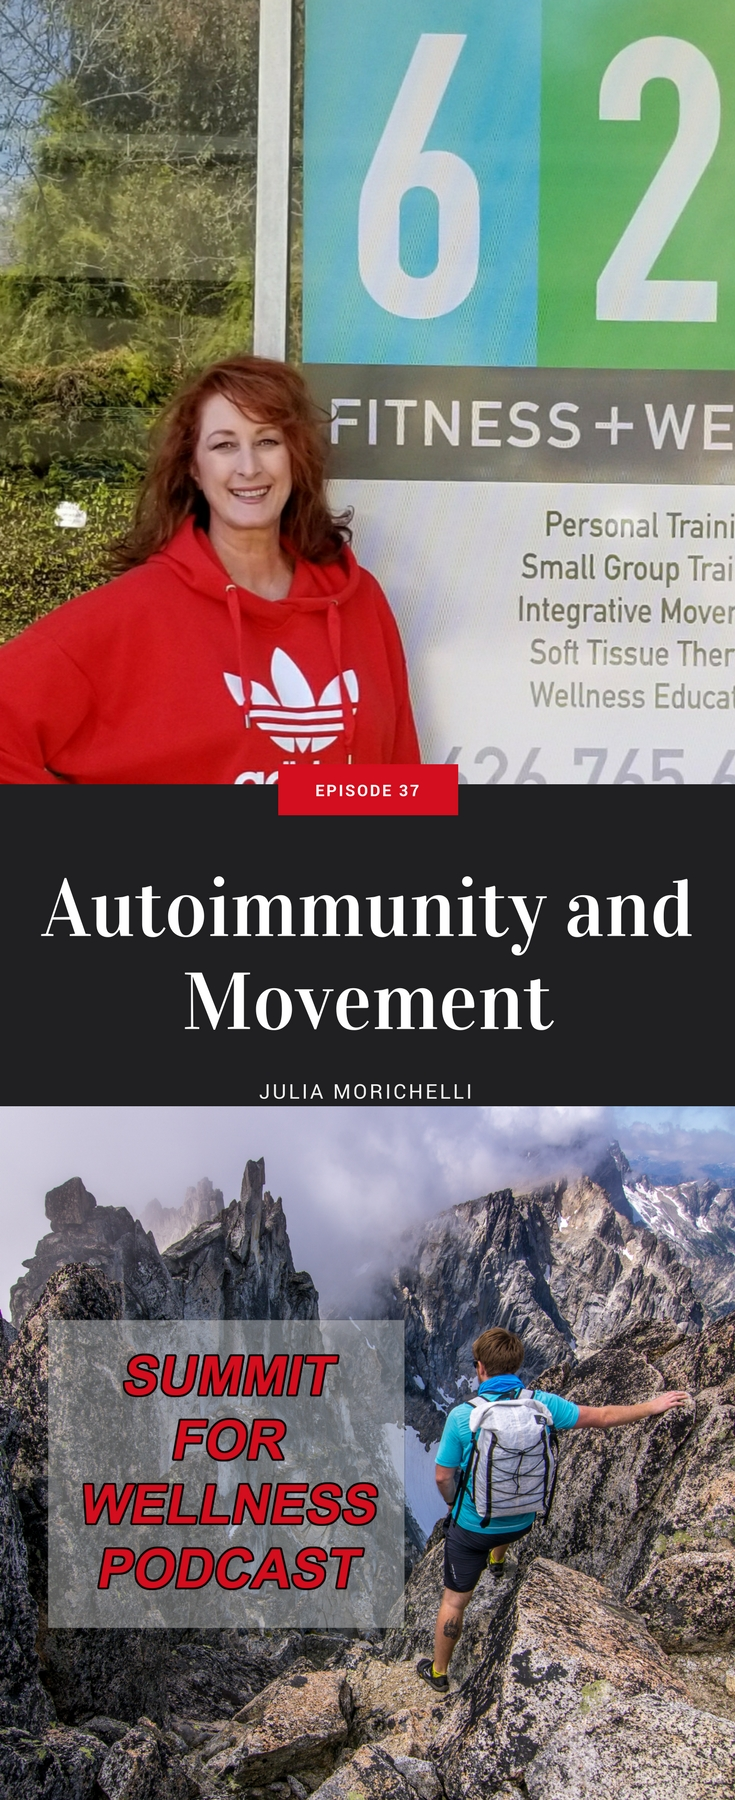 Julia Morichellie is a fitness trainer in California who has autoimmune diseases and helps others to work and move with their autoimmune issues